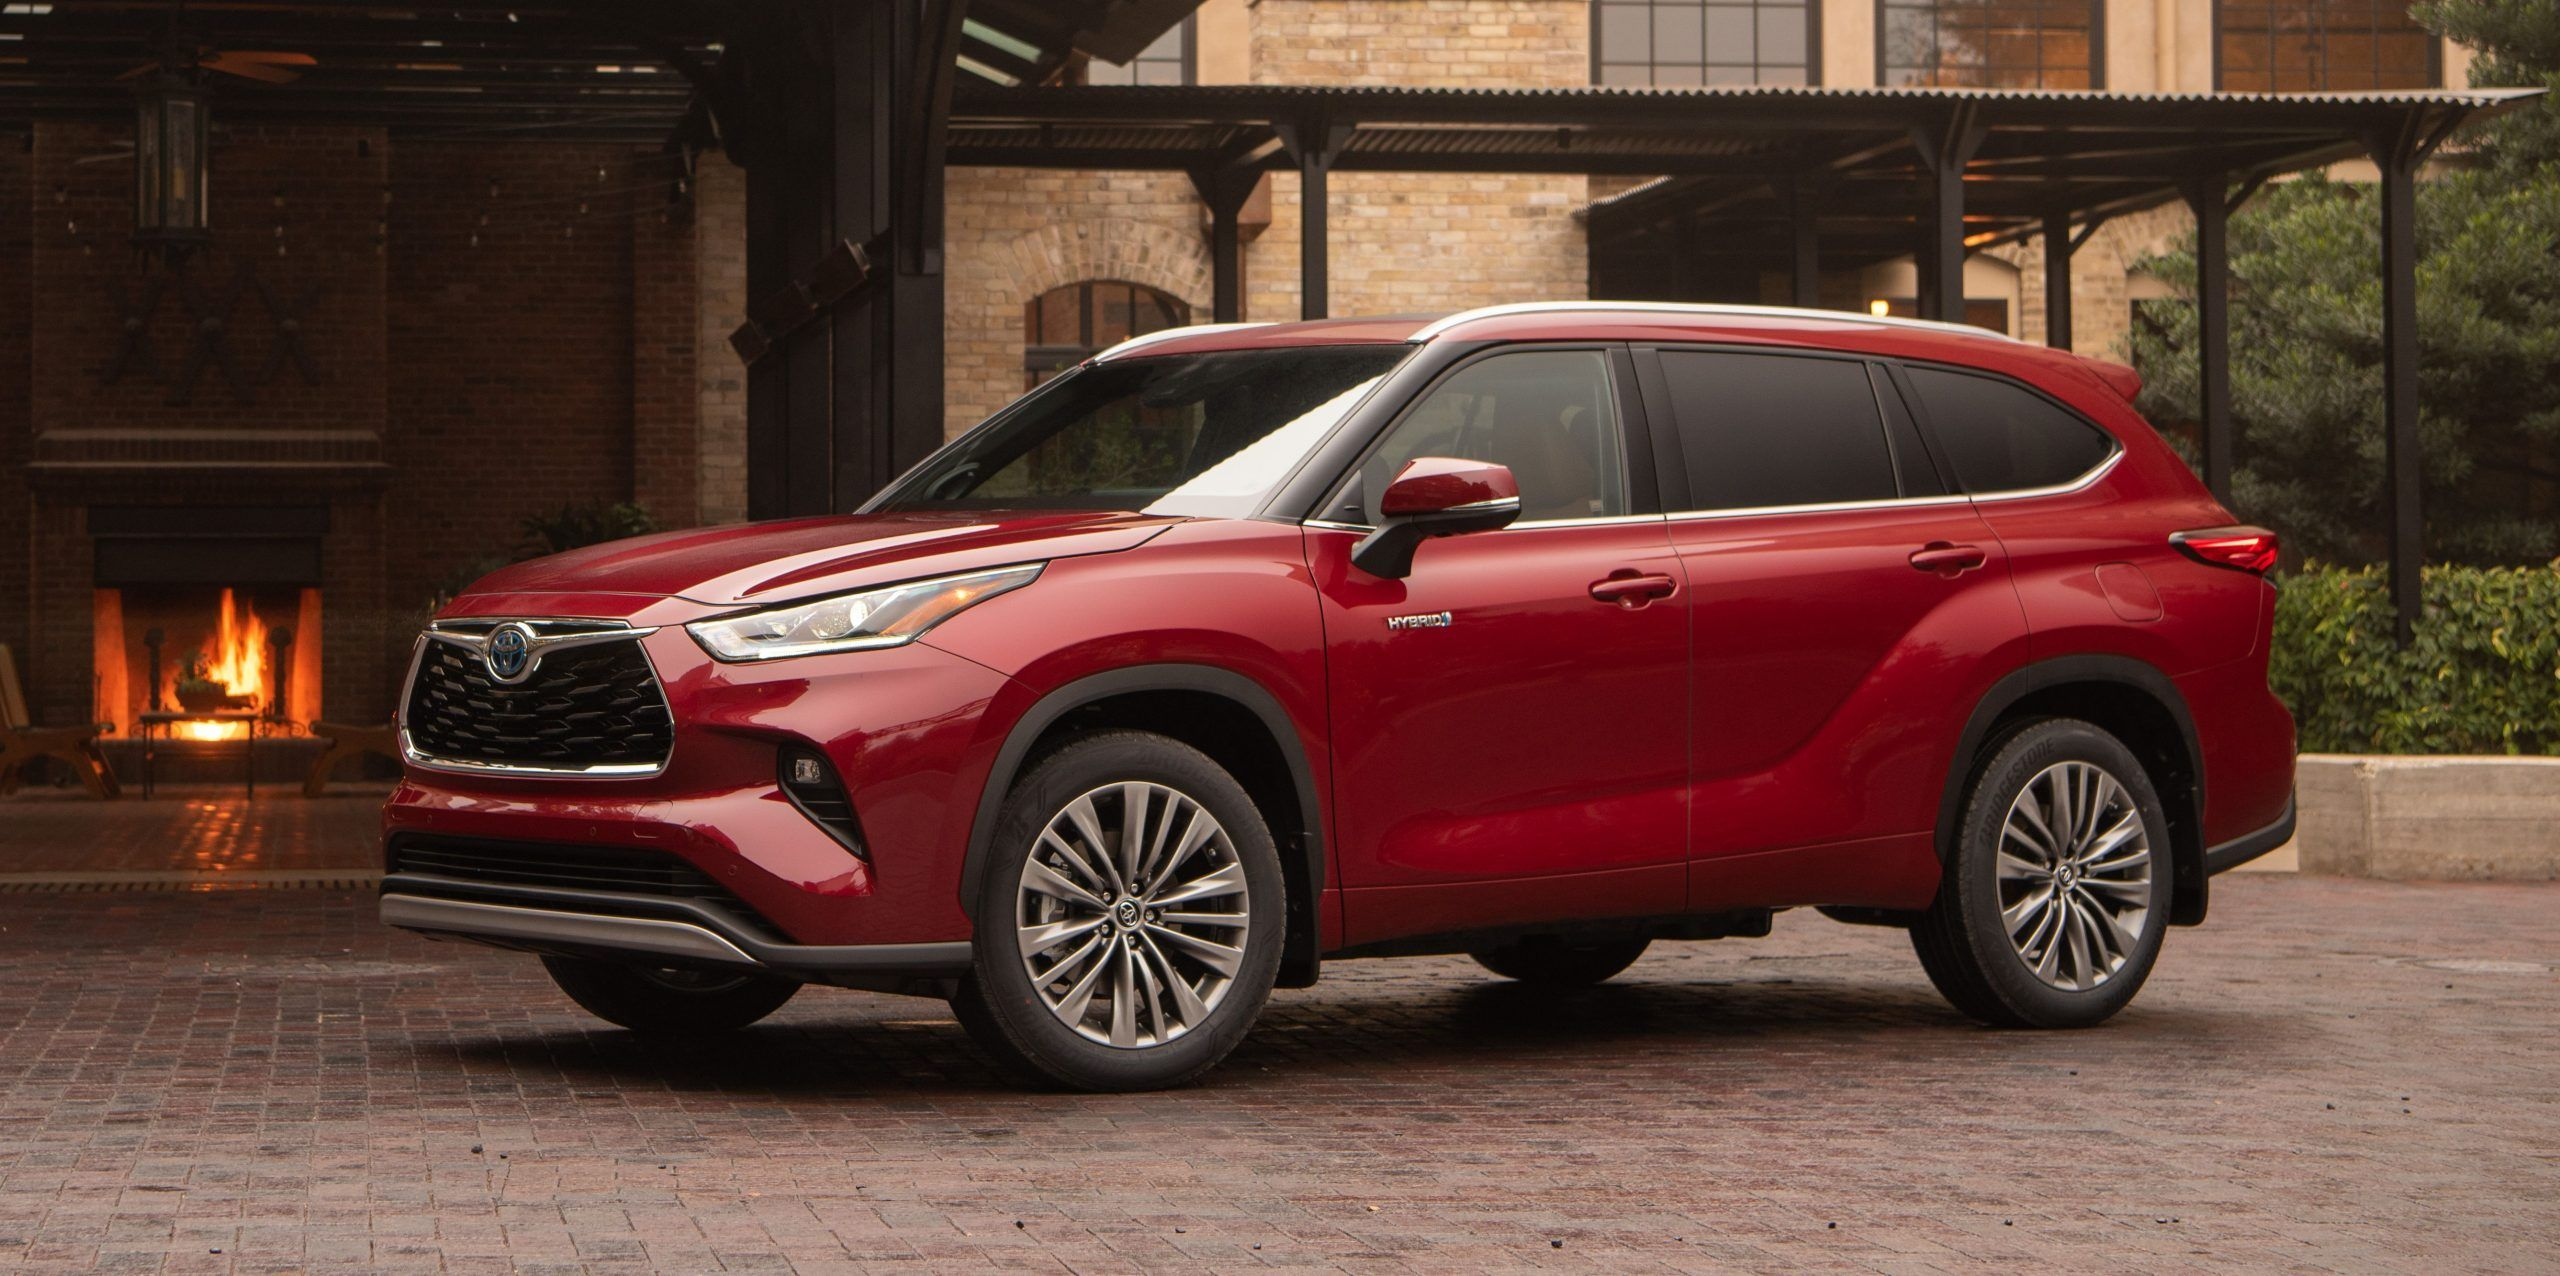 The redesigned 2020 Toyota Highlander threerow SUV has a